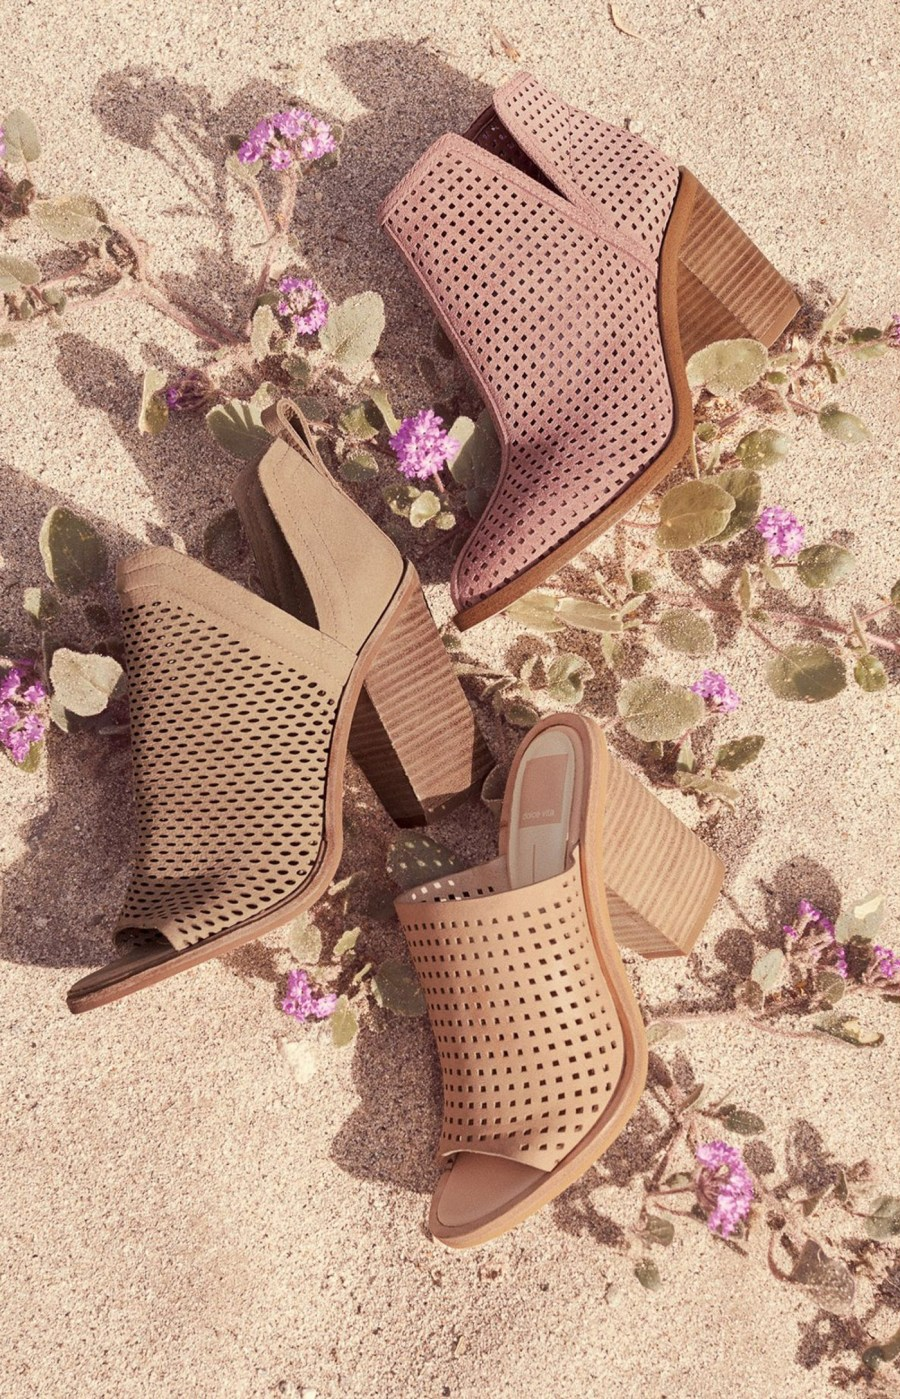 Perforated Shoes For Spring 2017, fashion blog, Treats and Trends, Nordstrom shoes